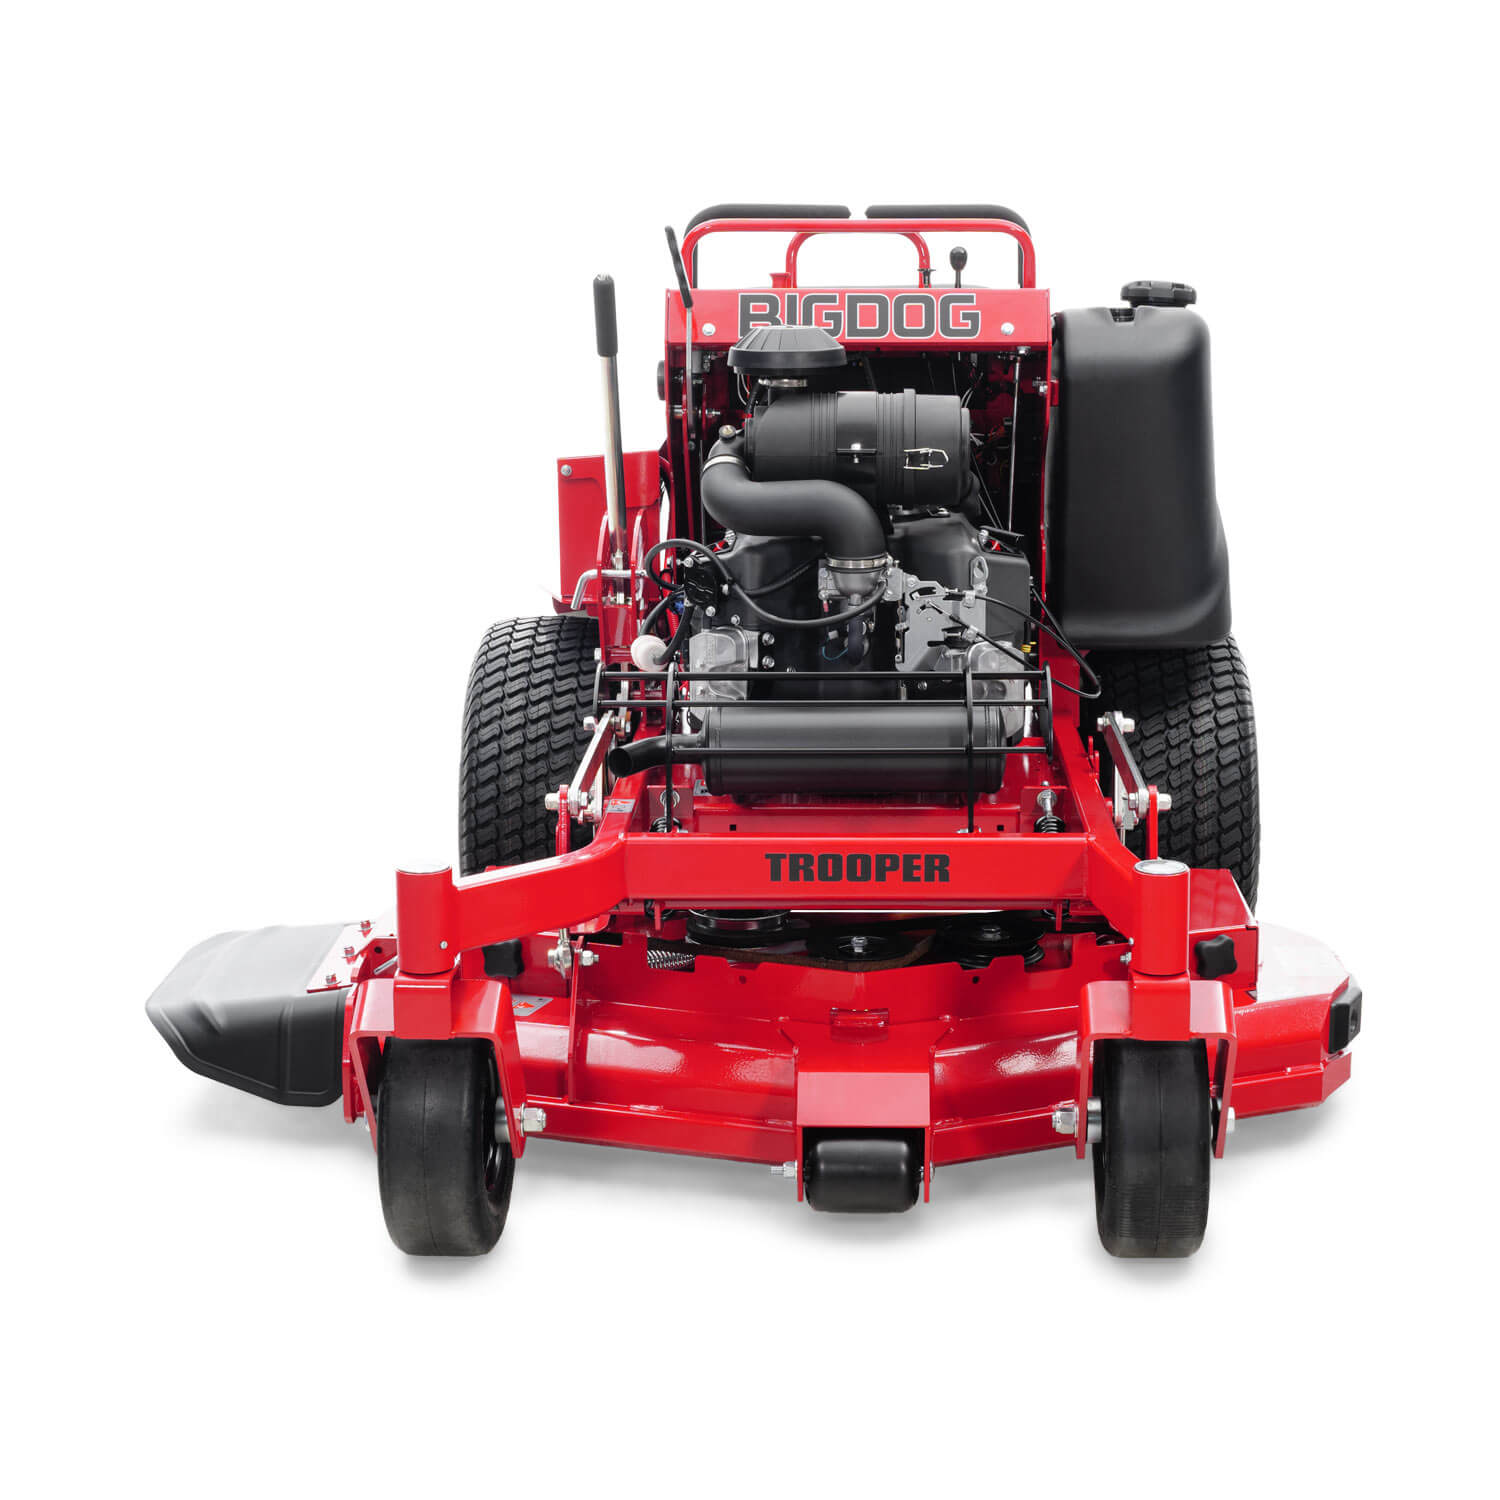 Image of the front of a red stand-on mower